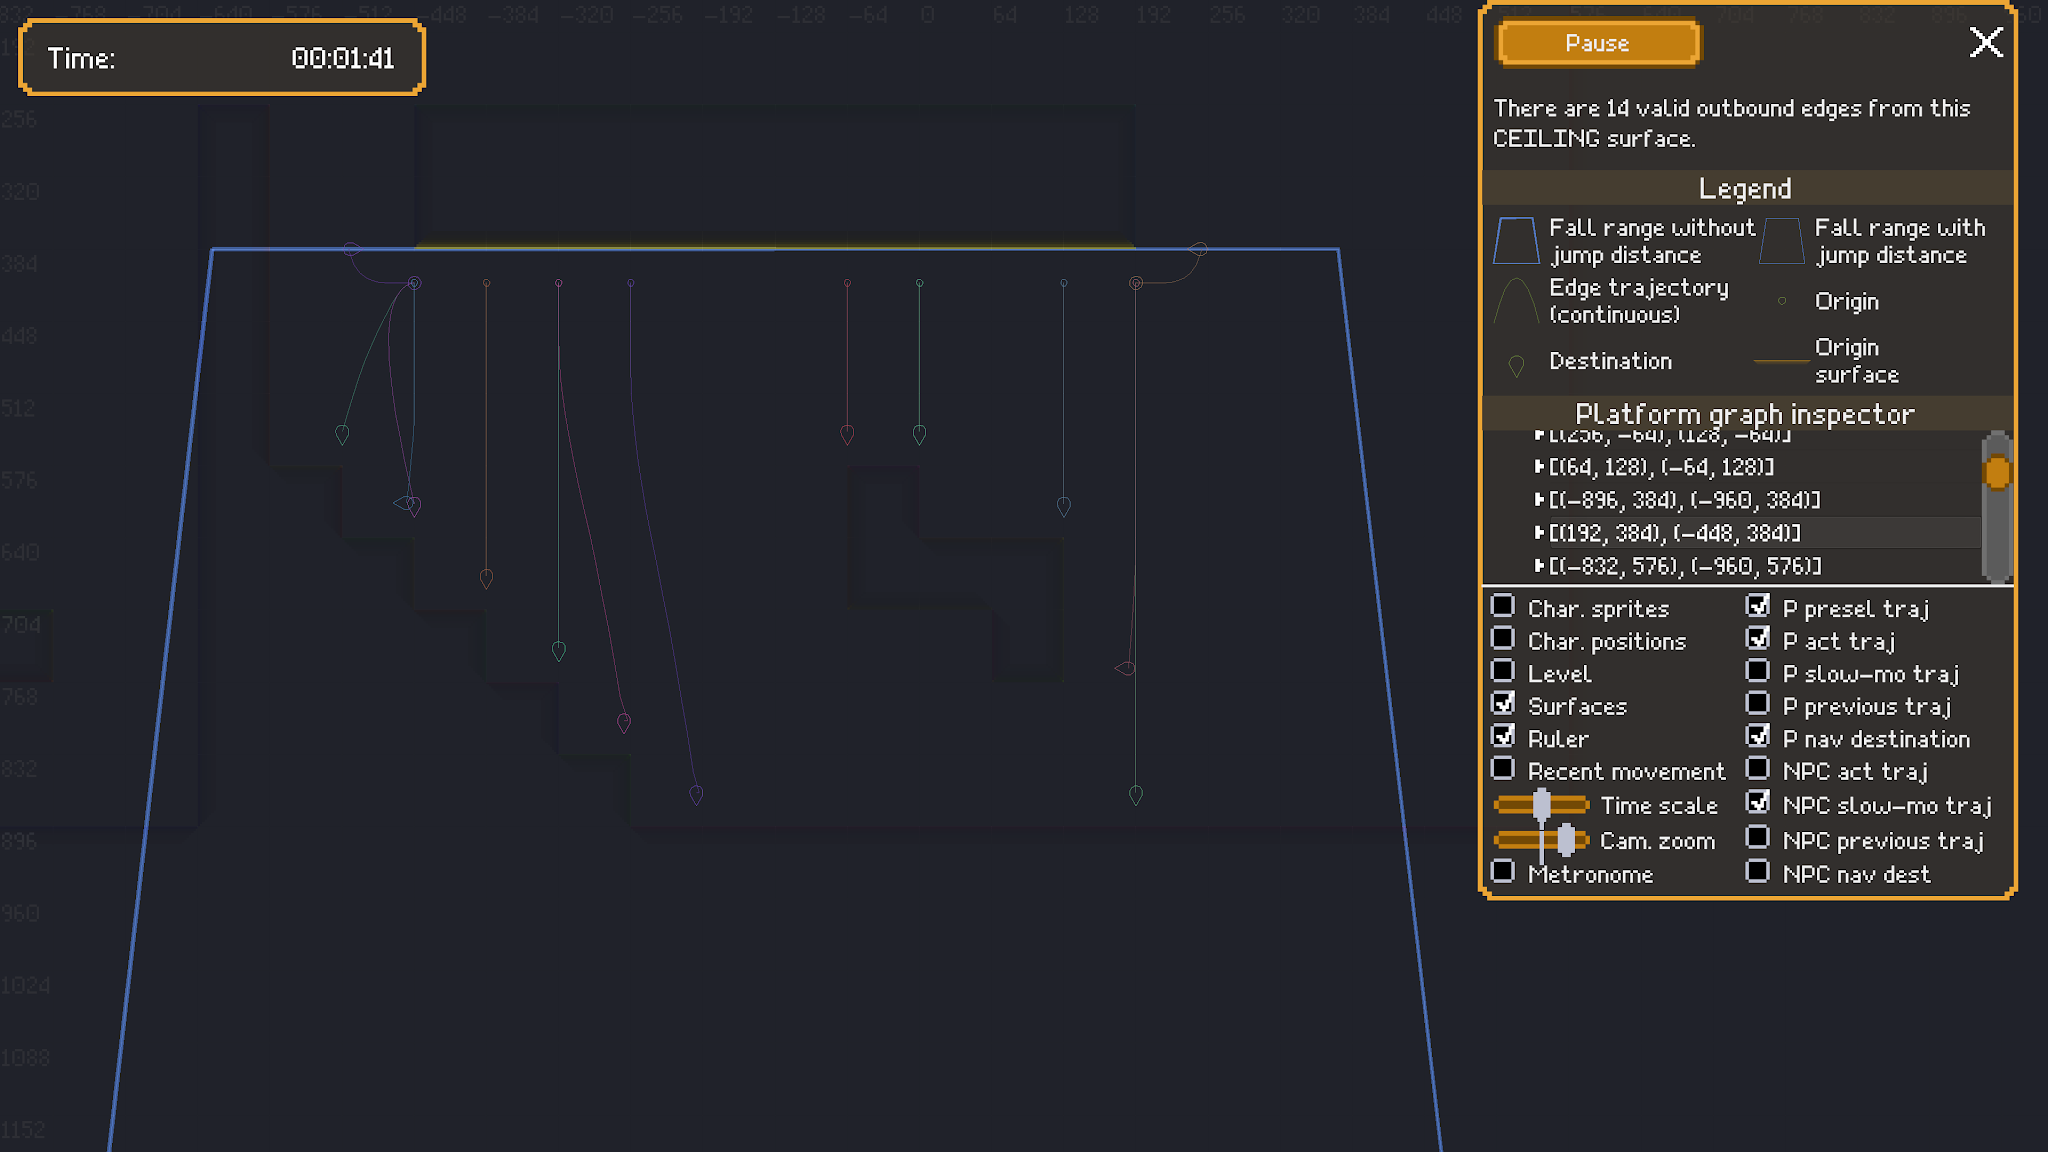 A screenshot showing annotations of edge trajectories for falling from a ceiling surface.